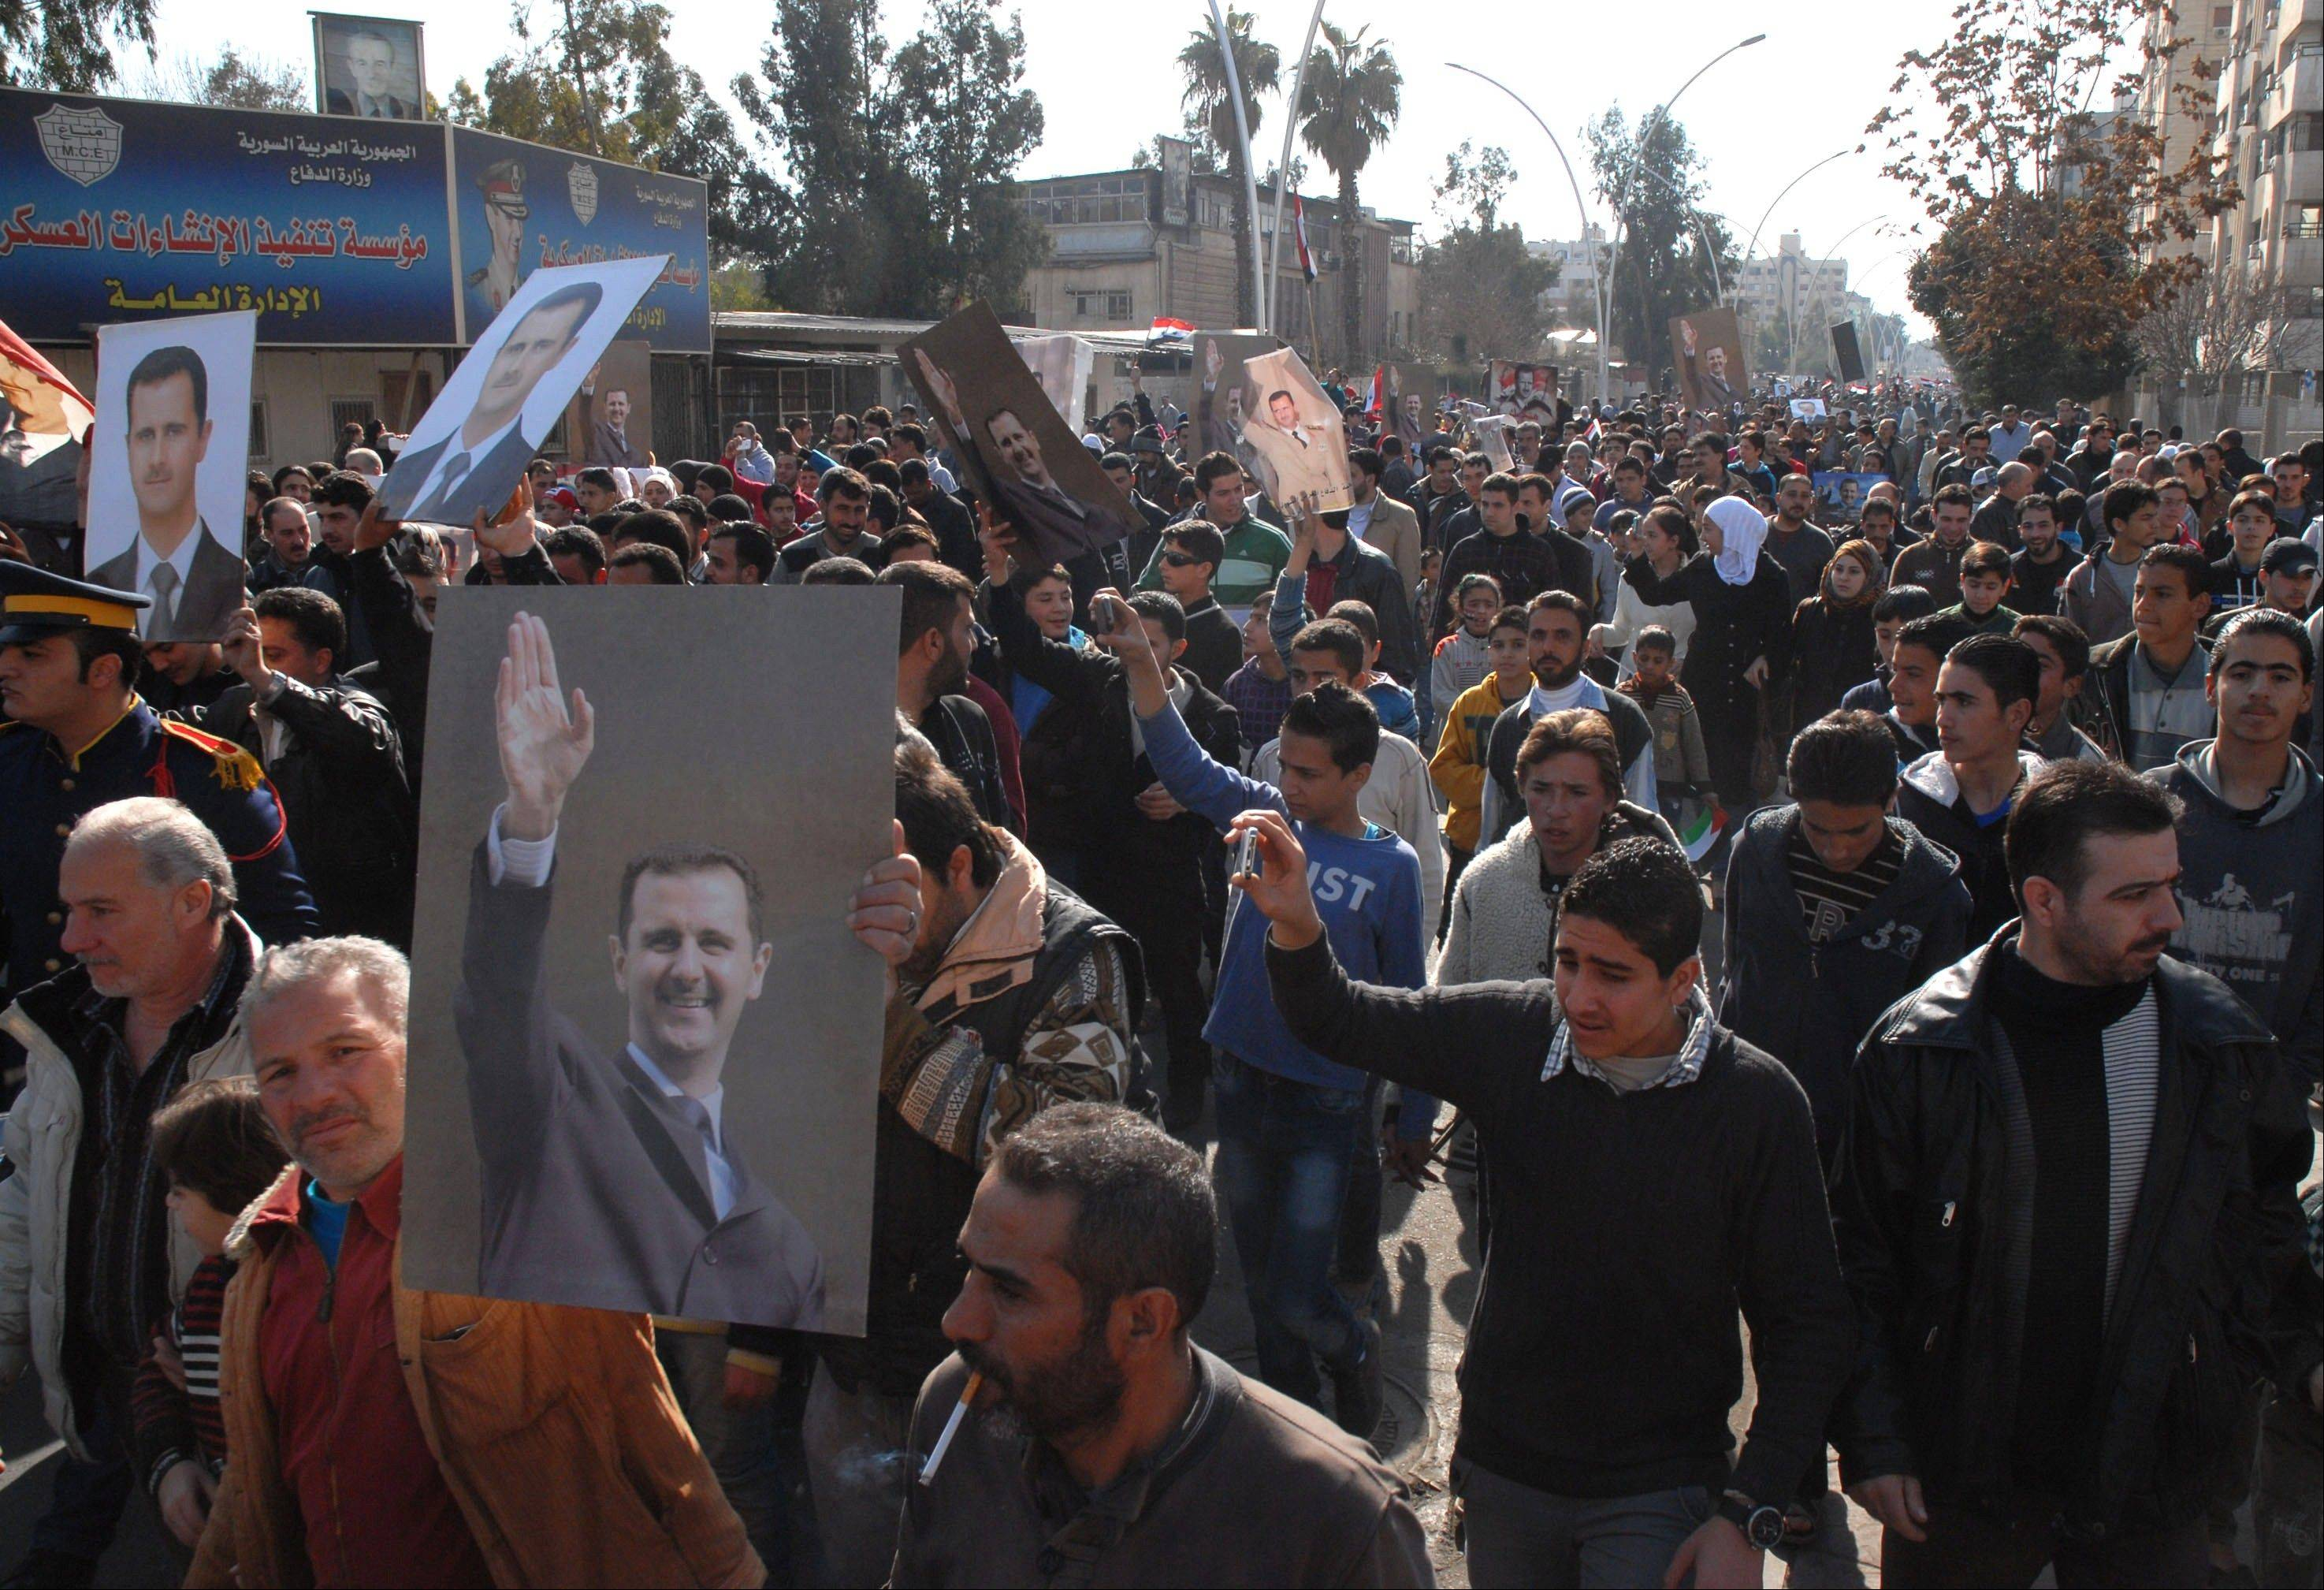 Pro-government Syrian protesters hold portraits of Syrian President Bashar Assad as they march during a demonstration at Kafar Souseh neighborhood Friday in Damascus, Syria.